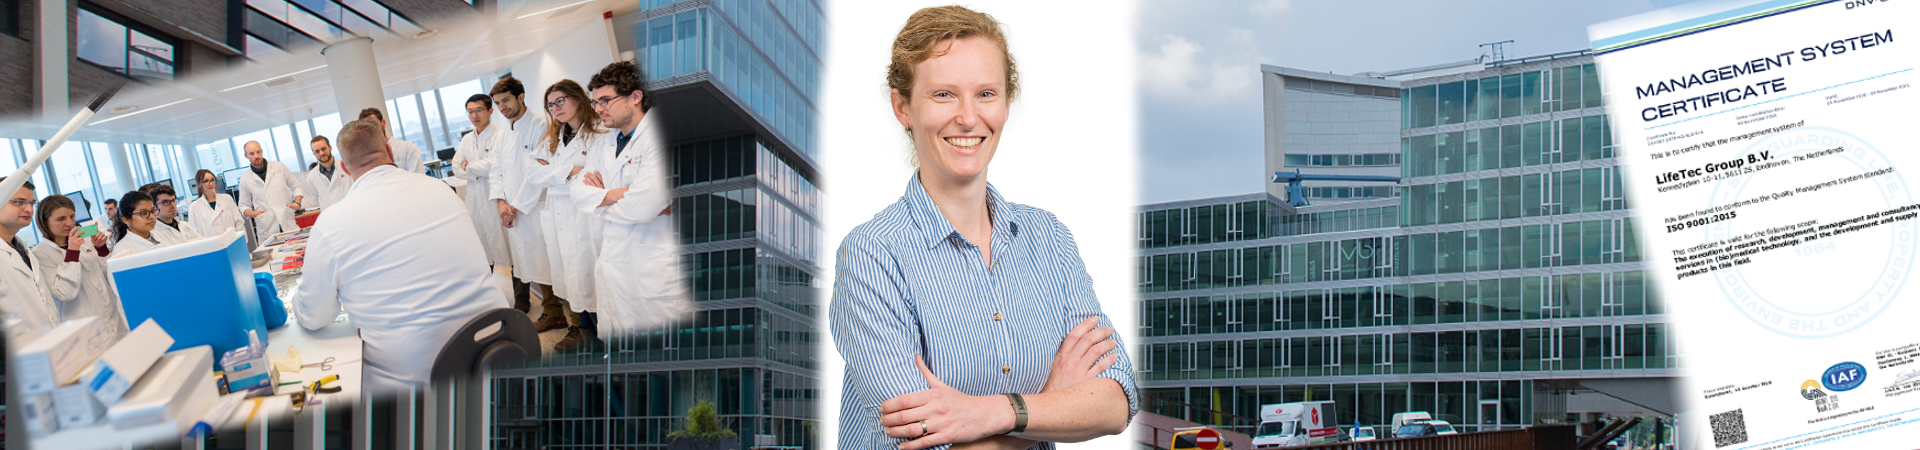 Medtech, R&D, Strategy, Quality: Introducing Anke Waterschoot